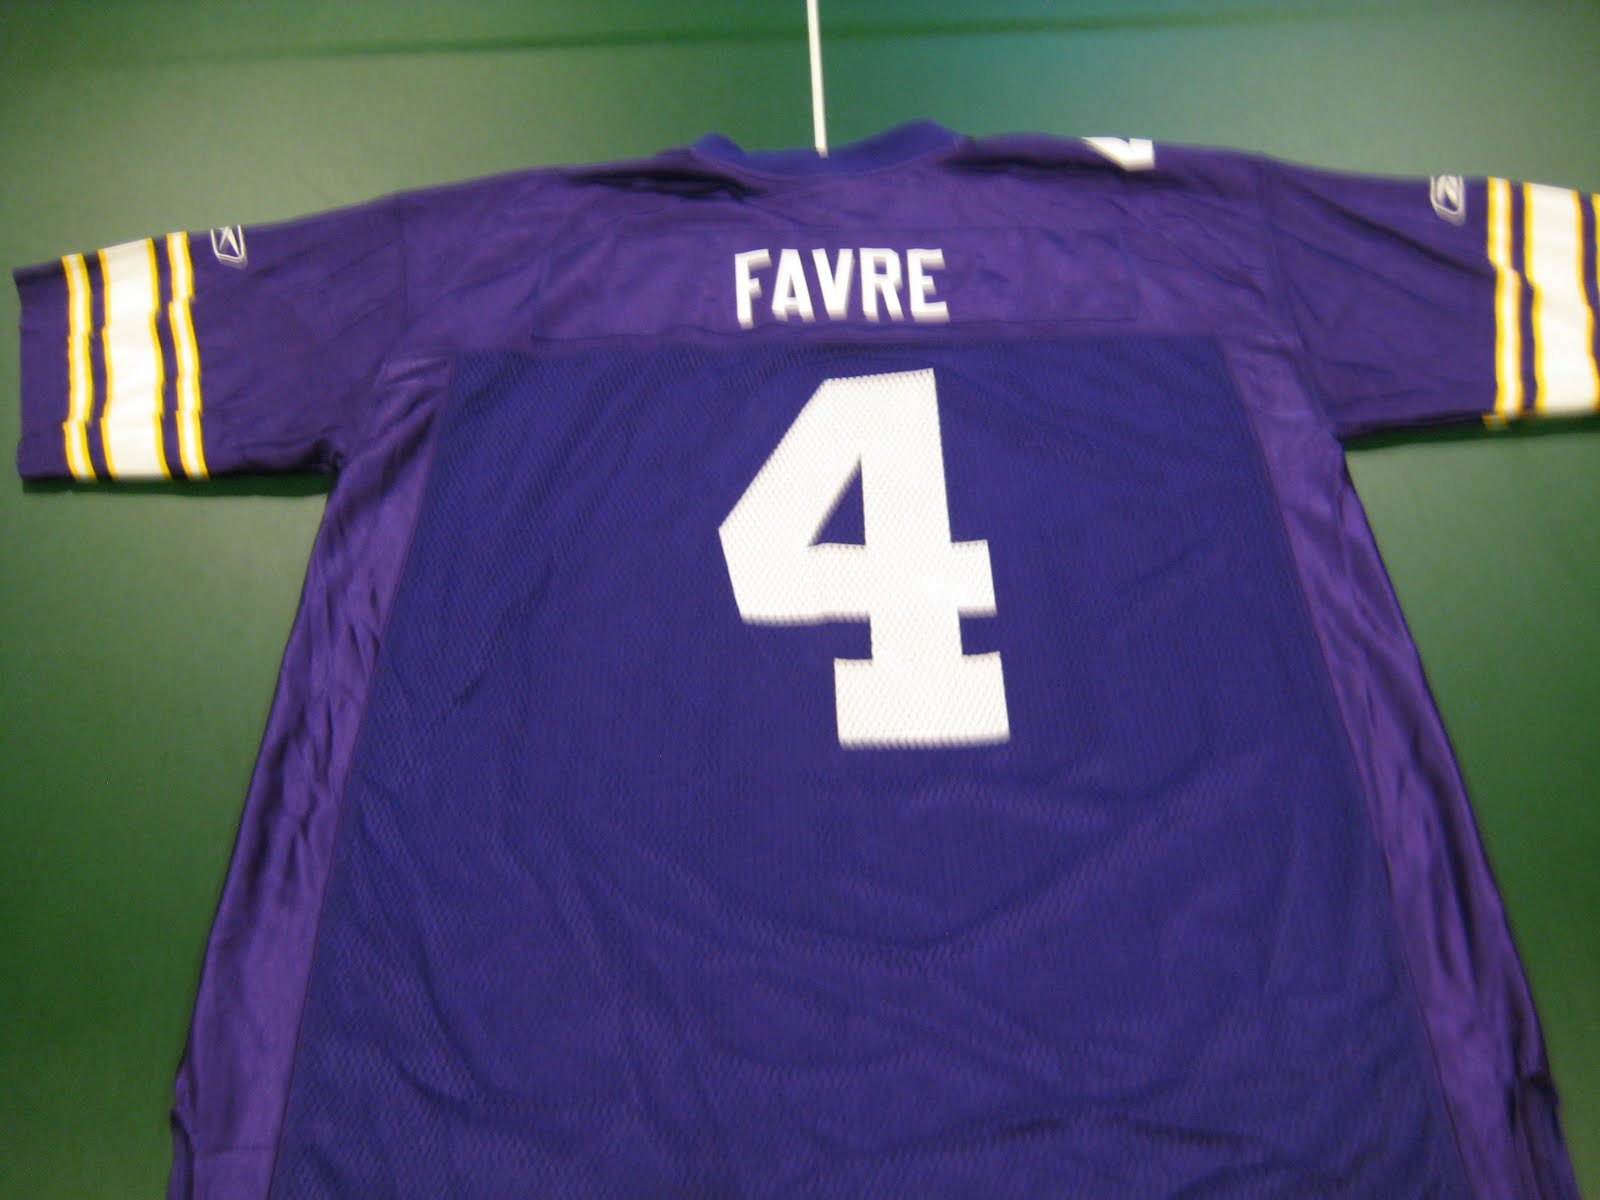 finest selection d63f6 ce93c Bmac's Jerseys: Brett Favre Replica Alternate/Throwback Jersey